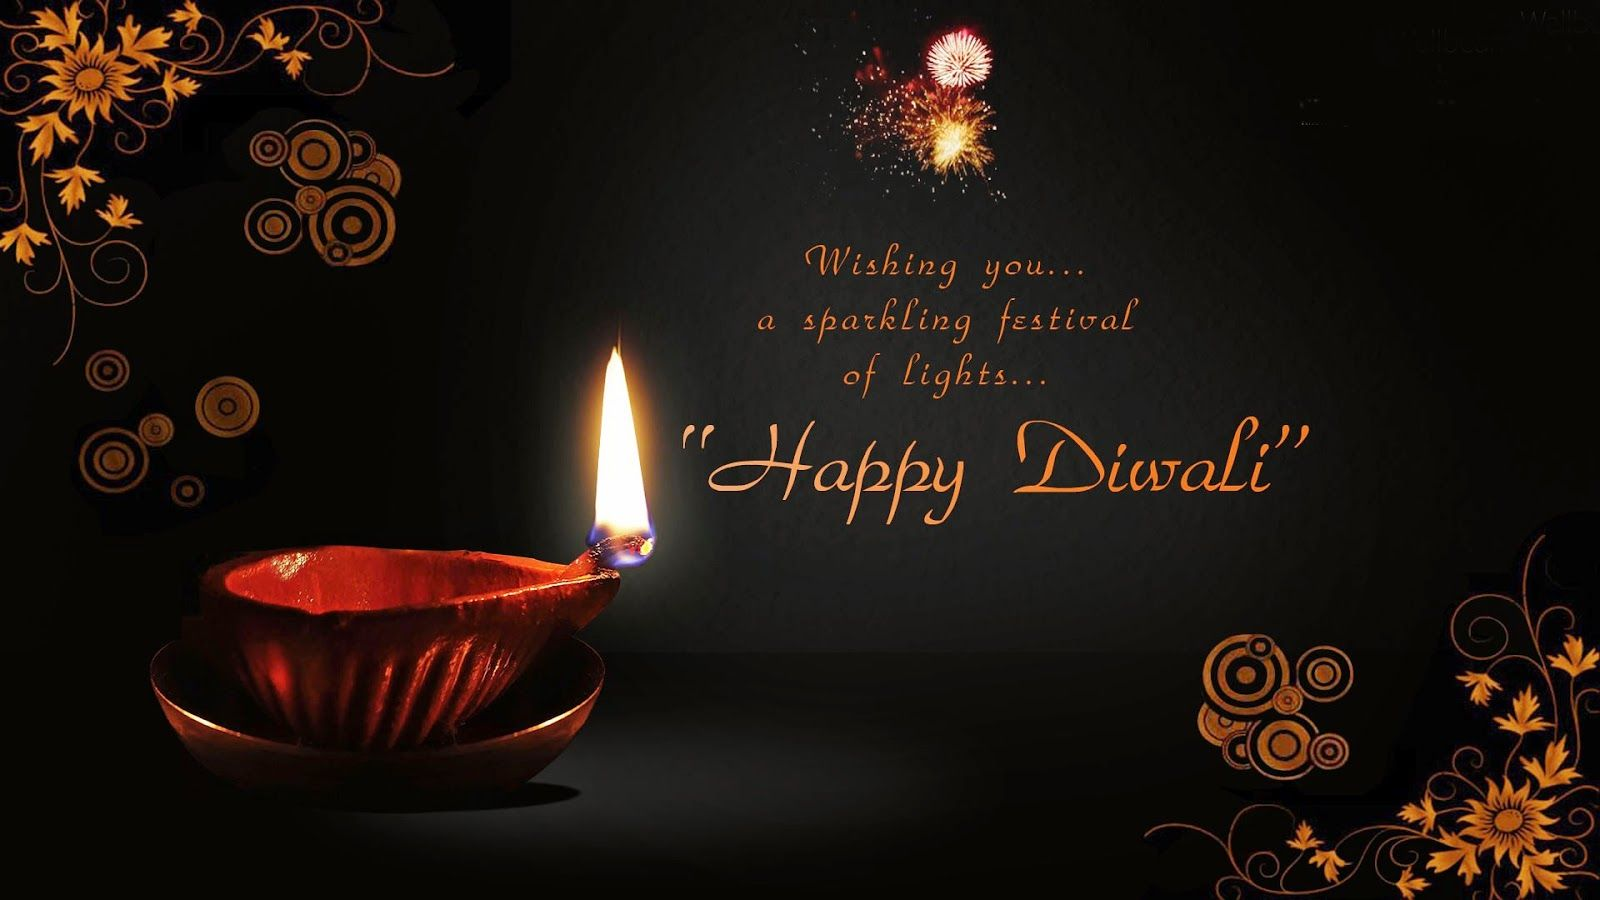 Happy Diwali 2014 Greeting And Wishes Hd Wallpapers Free Download Happy Diwali Wallpapers Happy Diwali Hd Wallpaper Happy Diwali Images Happy diwali hd wallpaper download